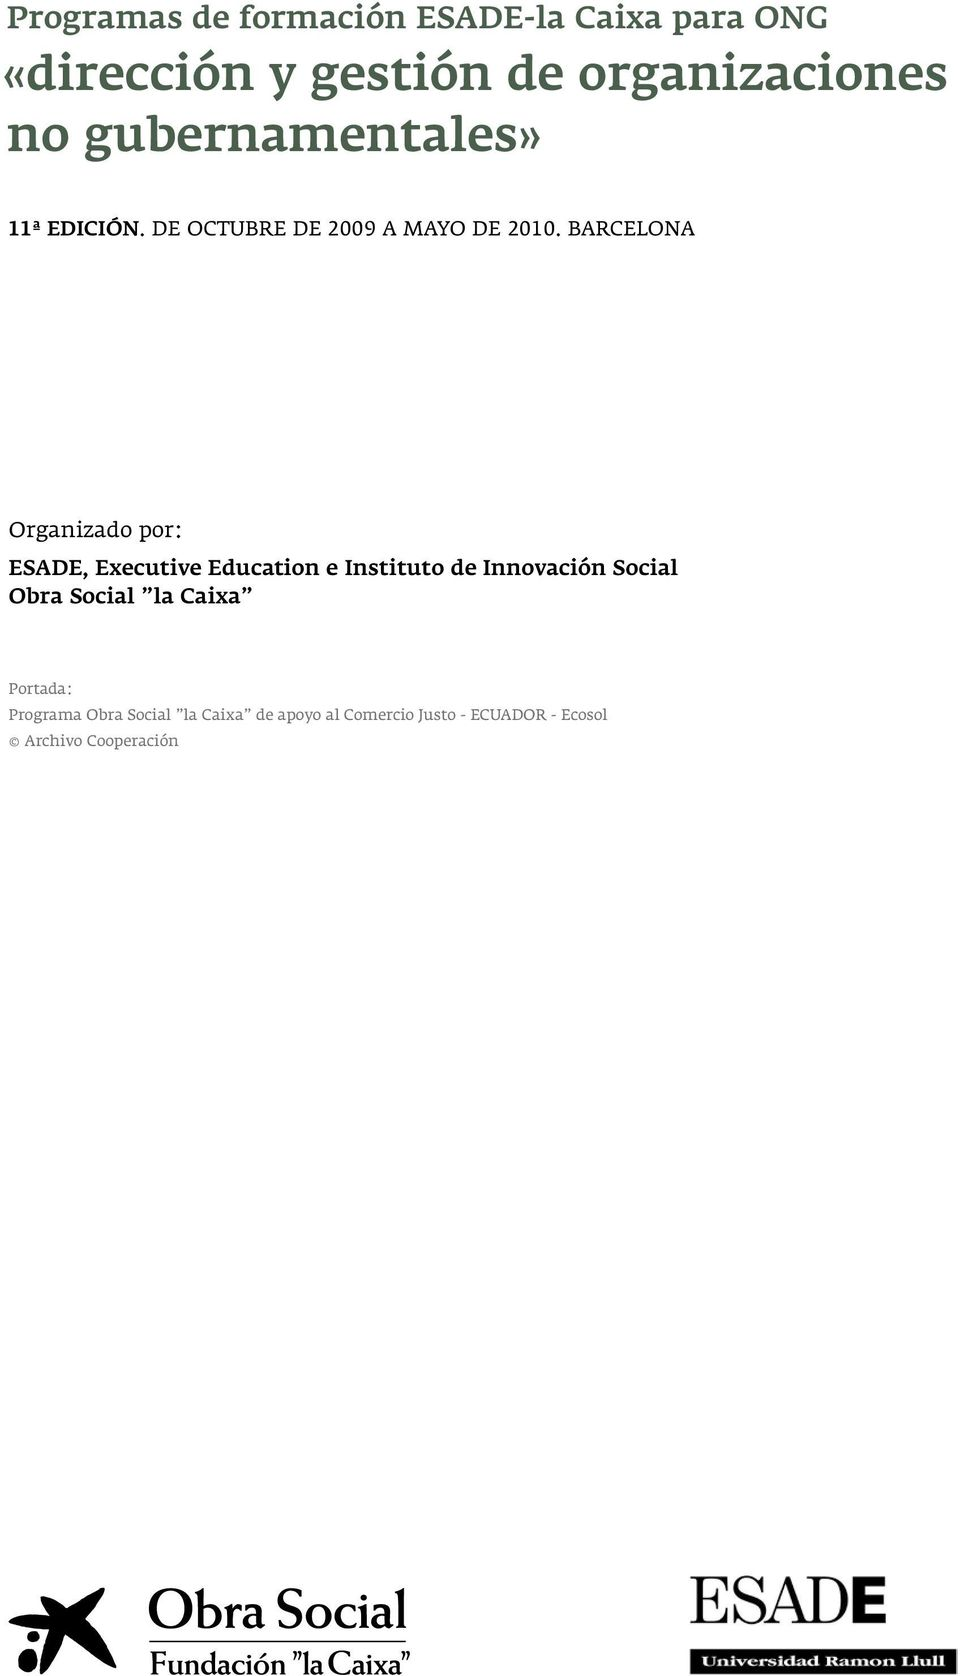 Barcelona Organizado por: ESADE, Executive Education e Instituto de Innovación Social Obra